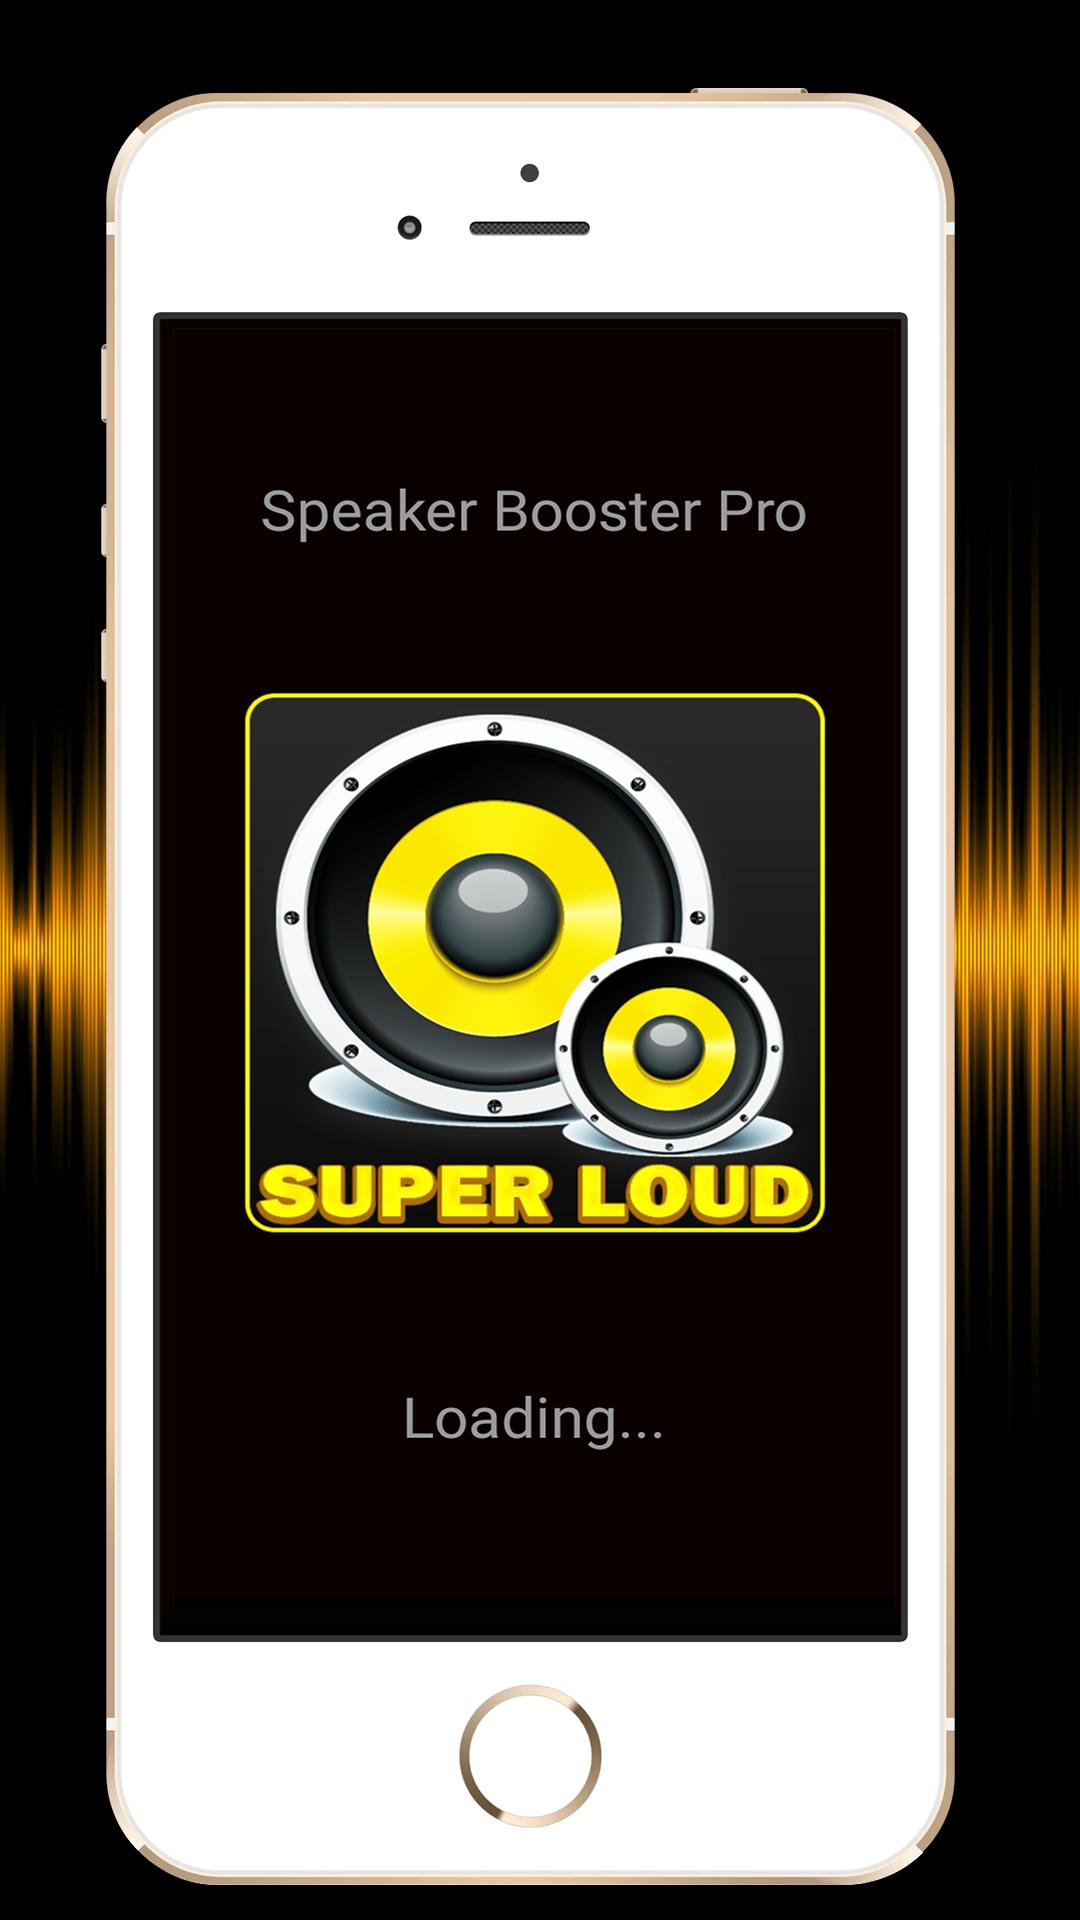 400 high volume booster super loud (sound booster) for